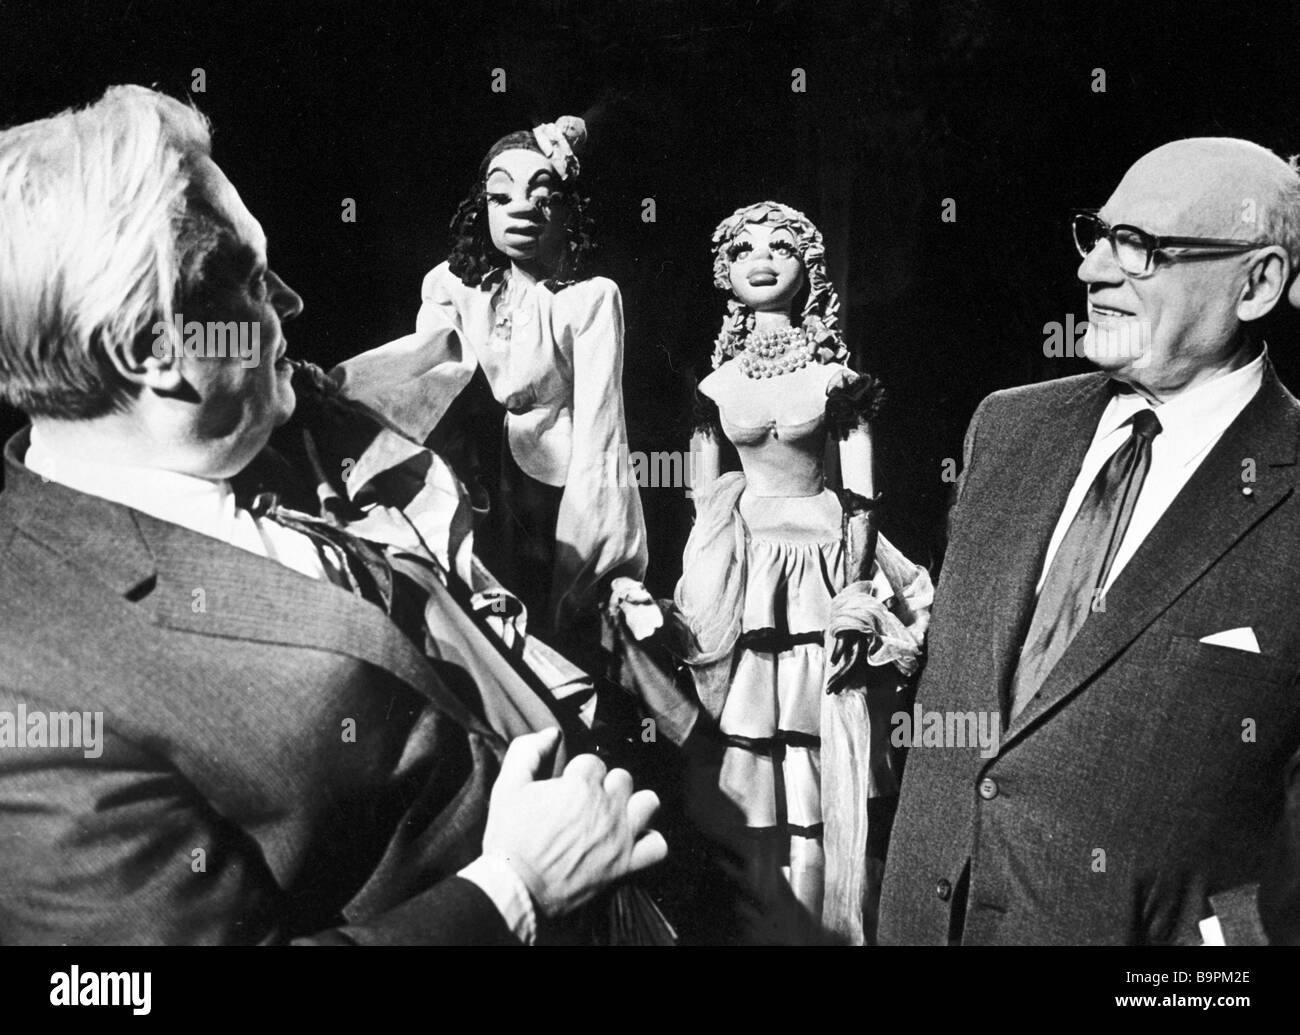 Sergei Obraztsov director of the State Central Puppet Theater left and famous US impresario Sol Hurok right who - Stock Image